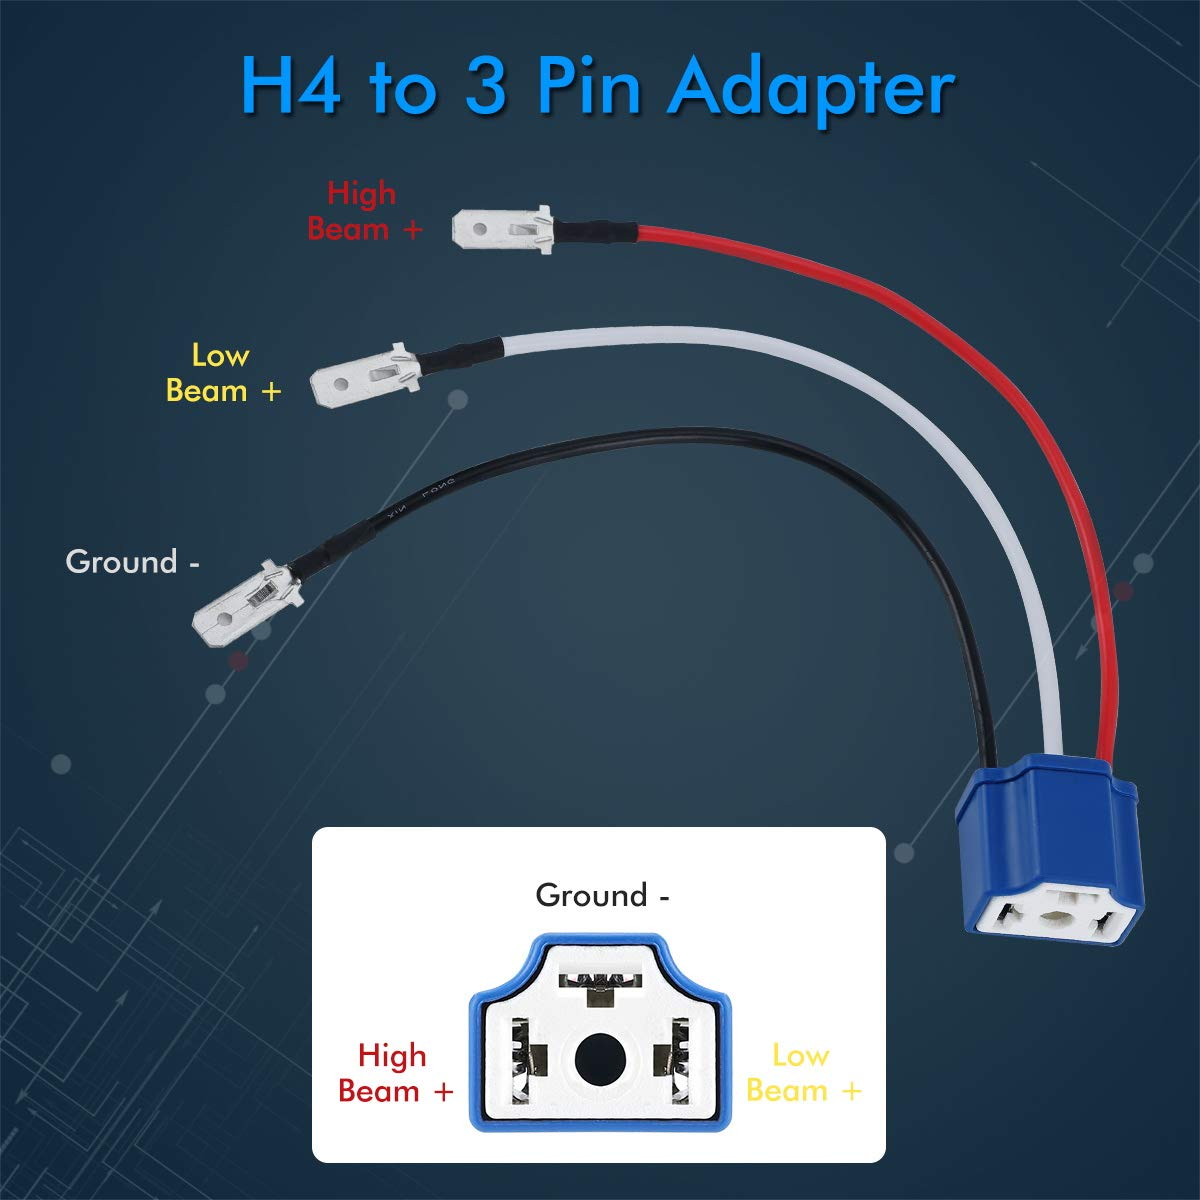 4x6 Led Headlights H4 9003 HB2 Wiring Harness Pair H4 Harness RENMAII-light Ceramic H4 Scoket H4 9003 HB2 Harness H4 Wiring Harness H4 to 3 Pin Adapter Fix Un-Standard H4 Plug Pins